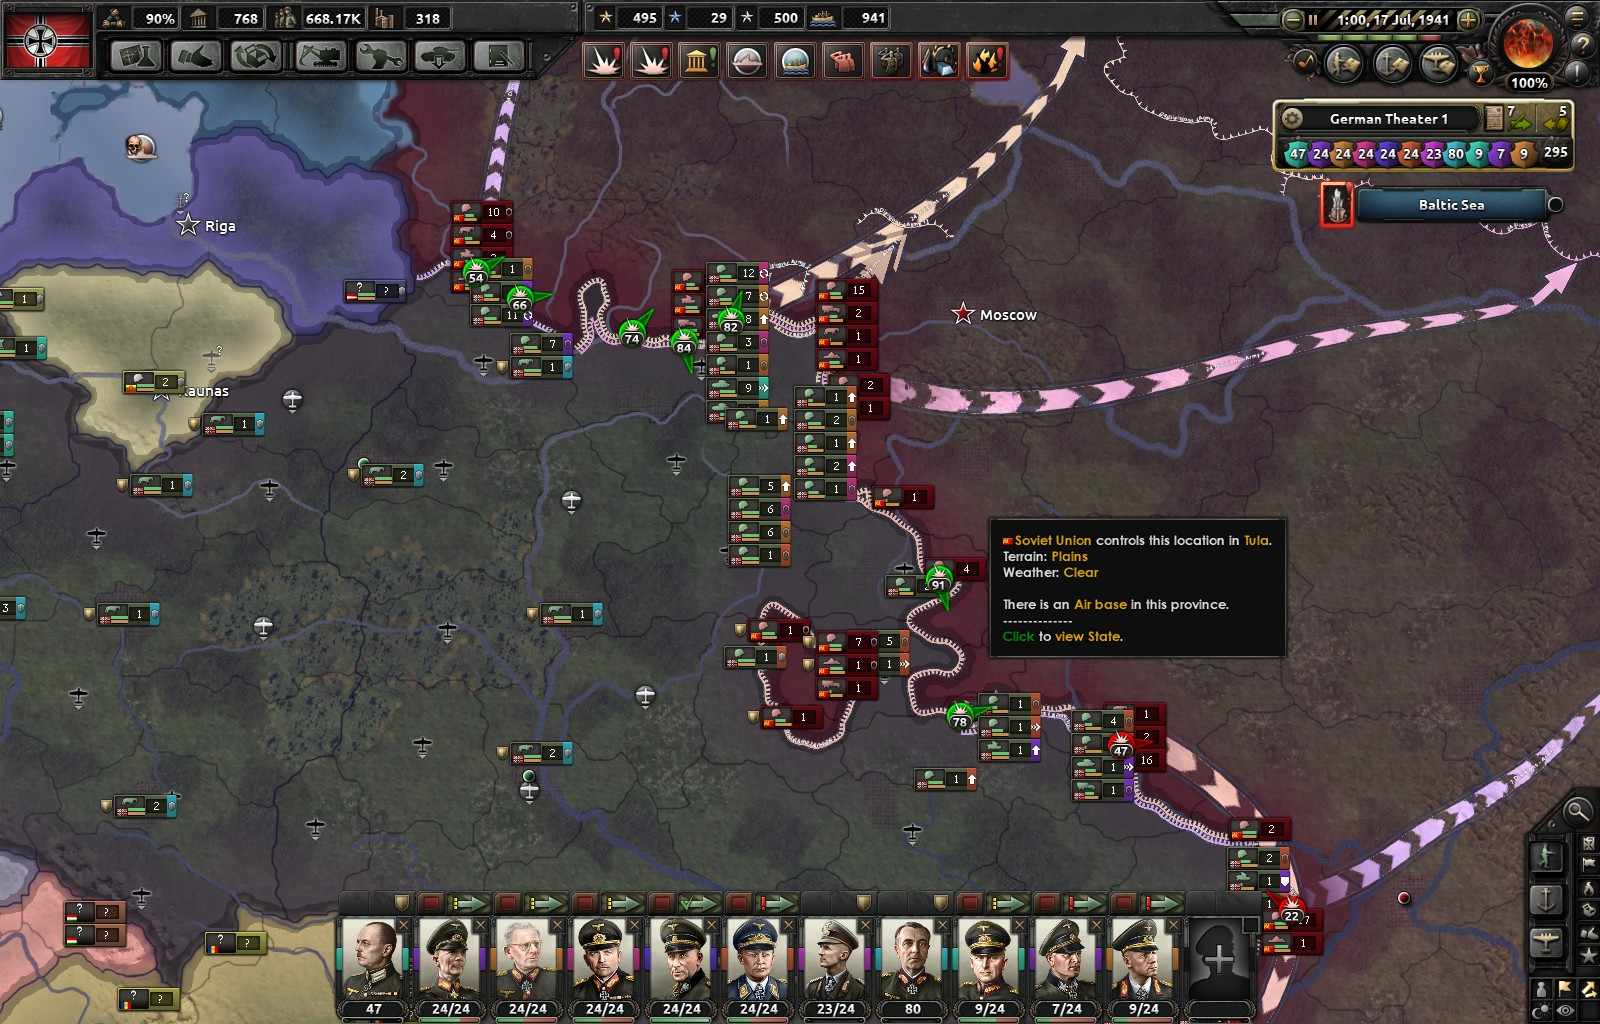 Issues with AI Germany is why Germany loses the war in 1941